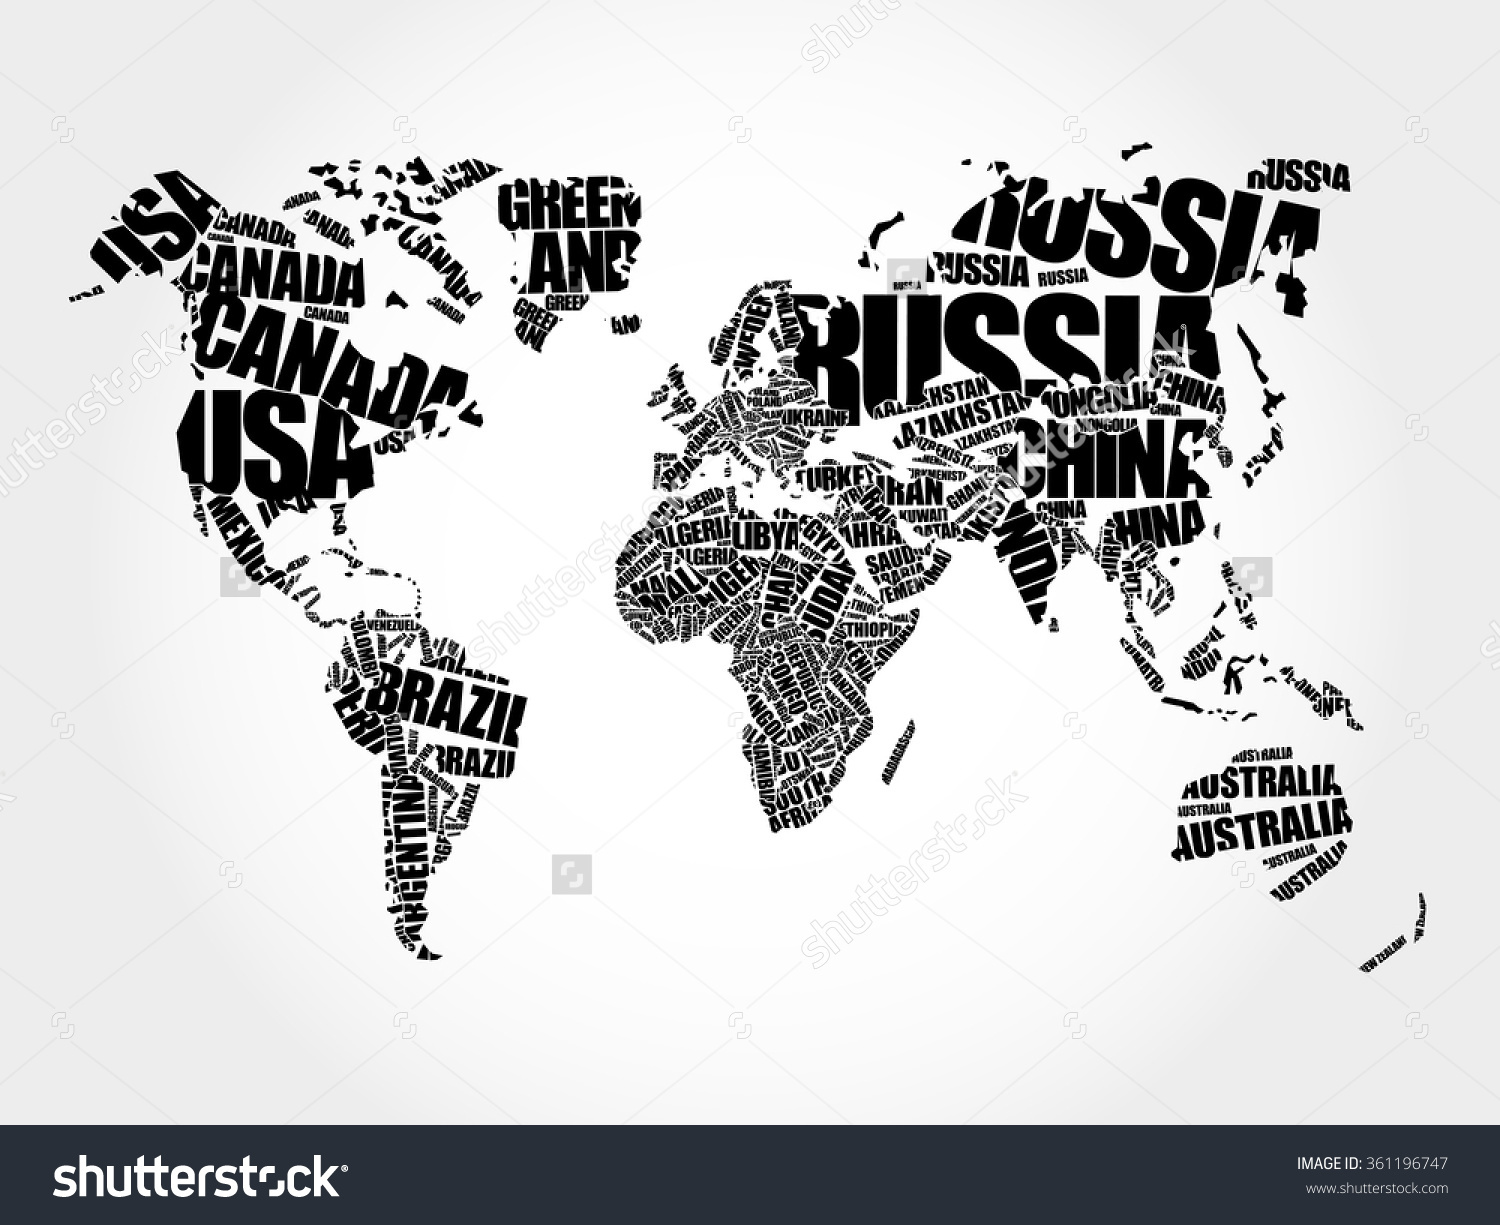 And Continents World Picture Of Real Black Map Detail Stock Photo.